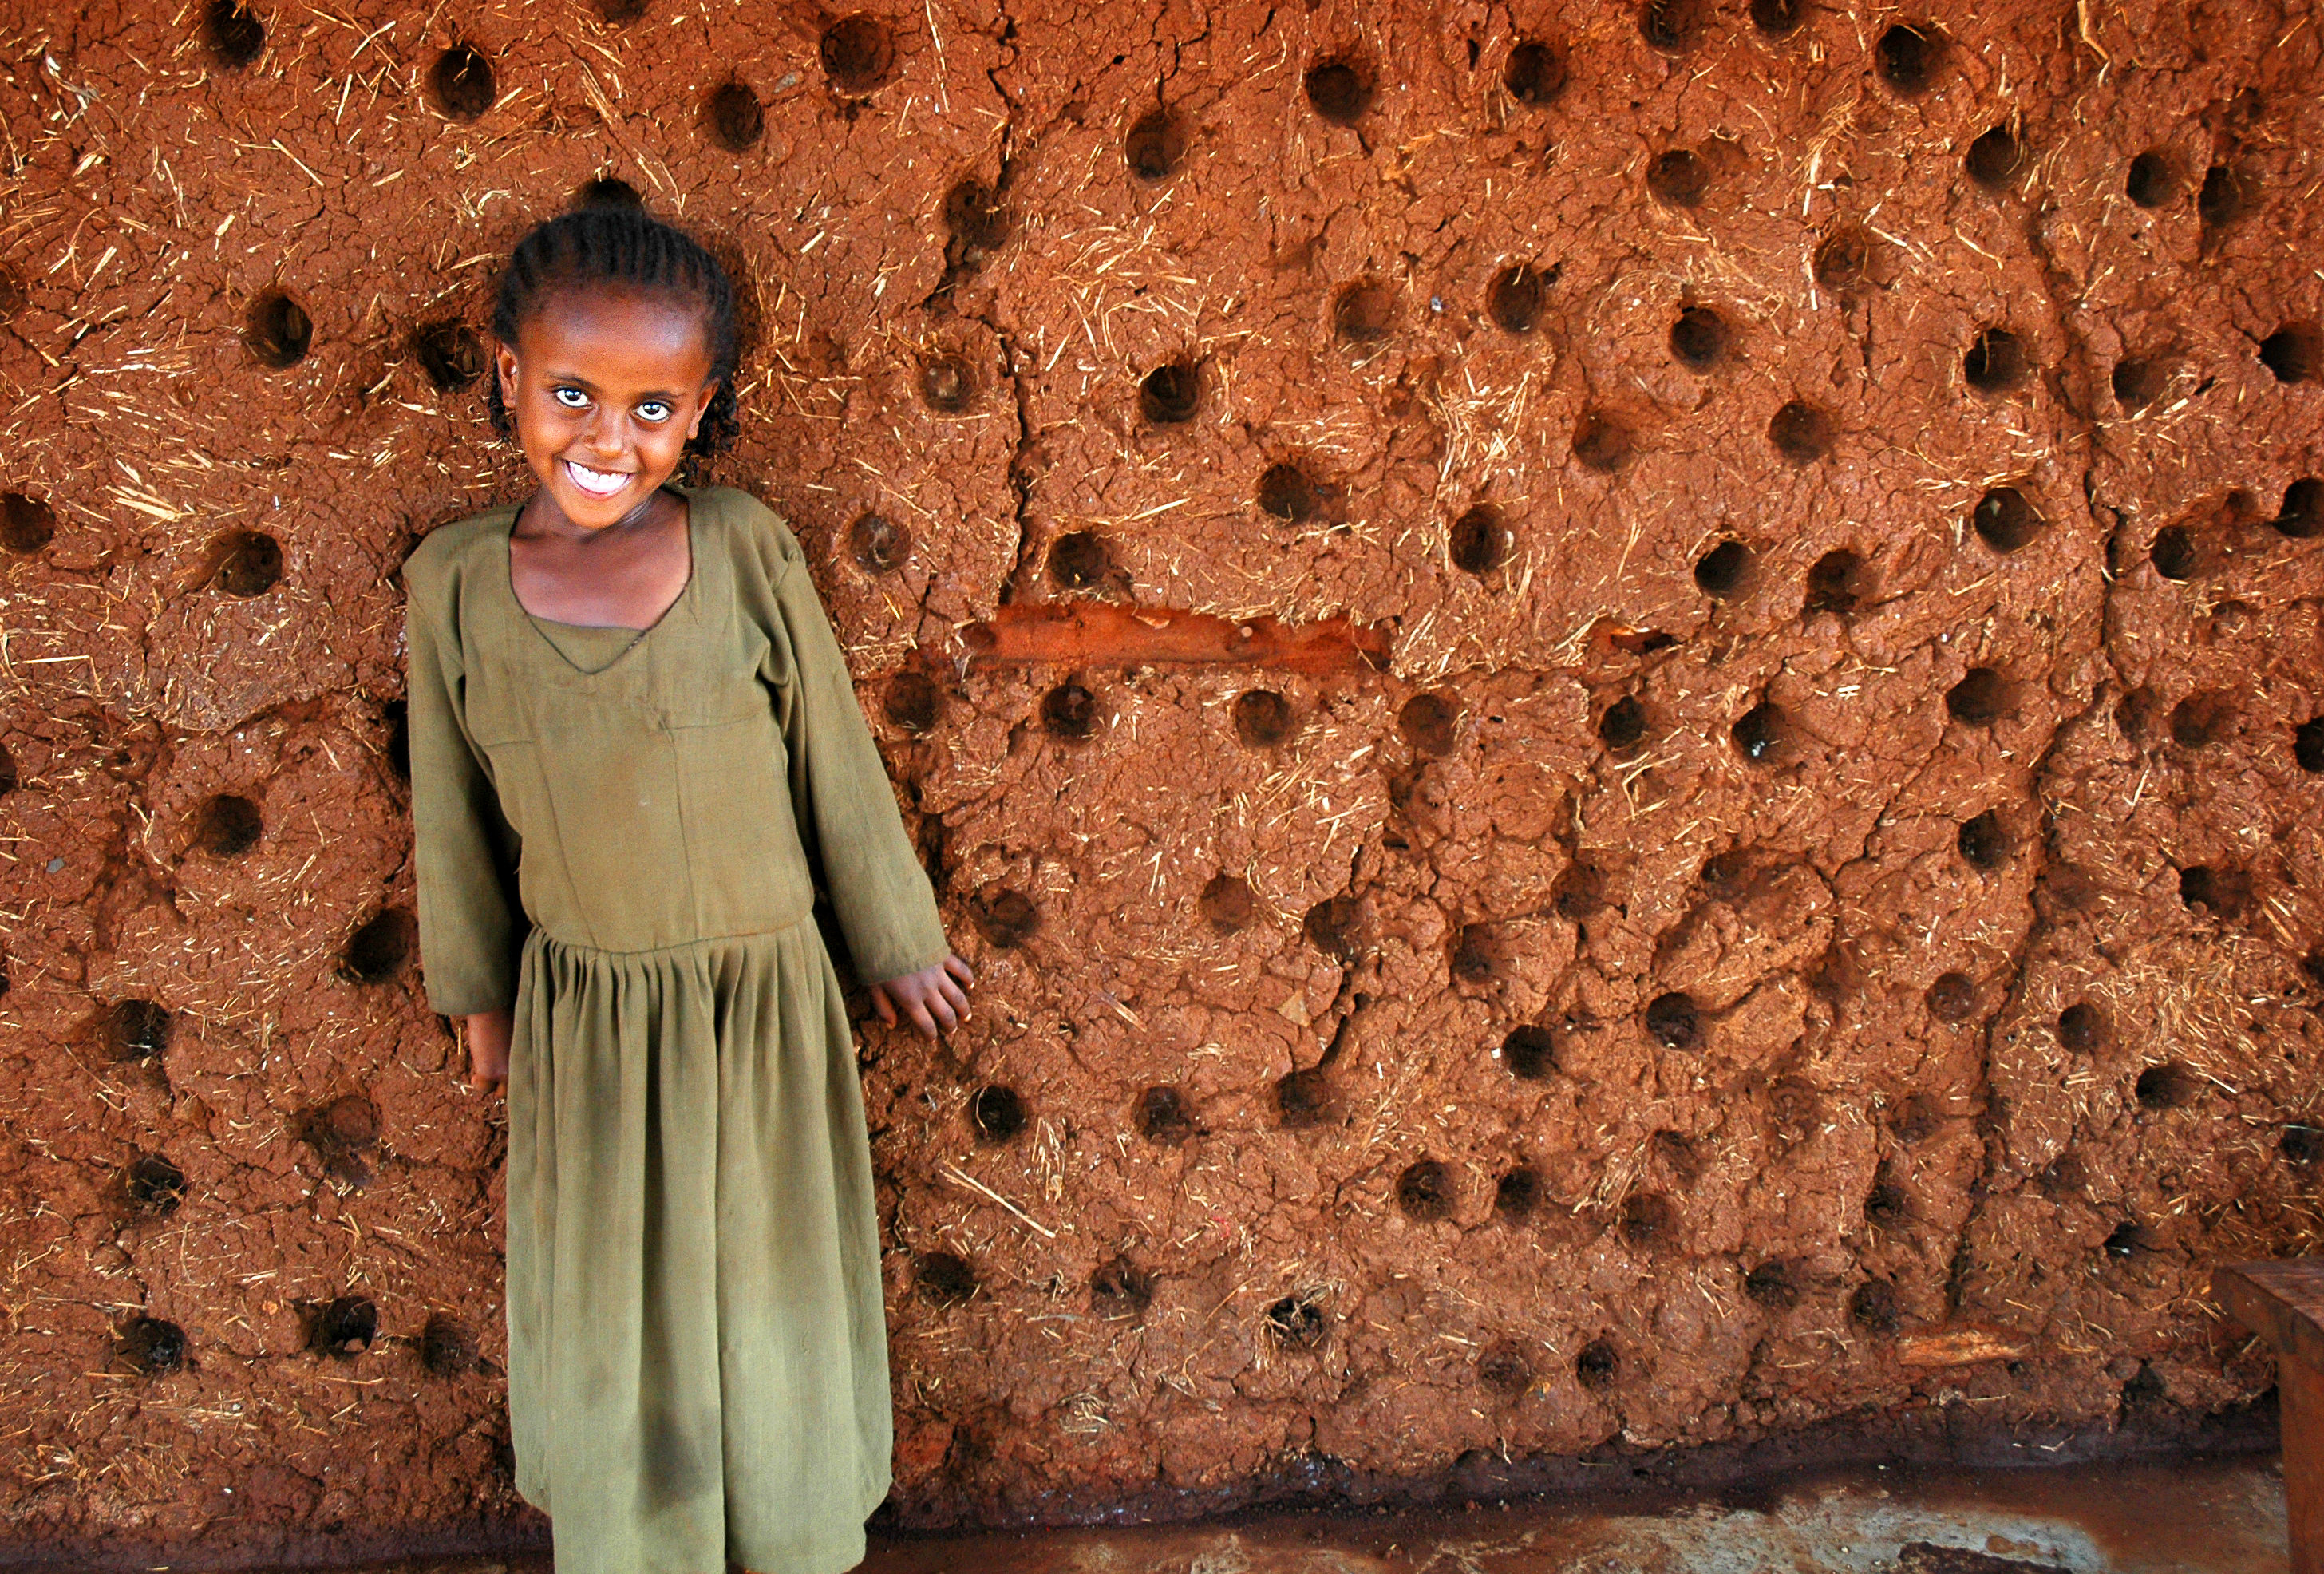 Smiling young girl standing against beautiful terracotta brown mud wall